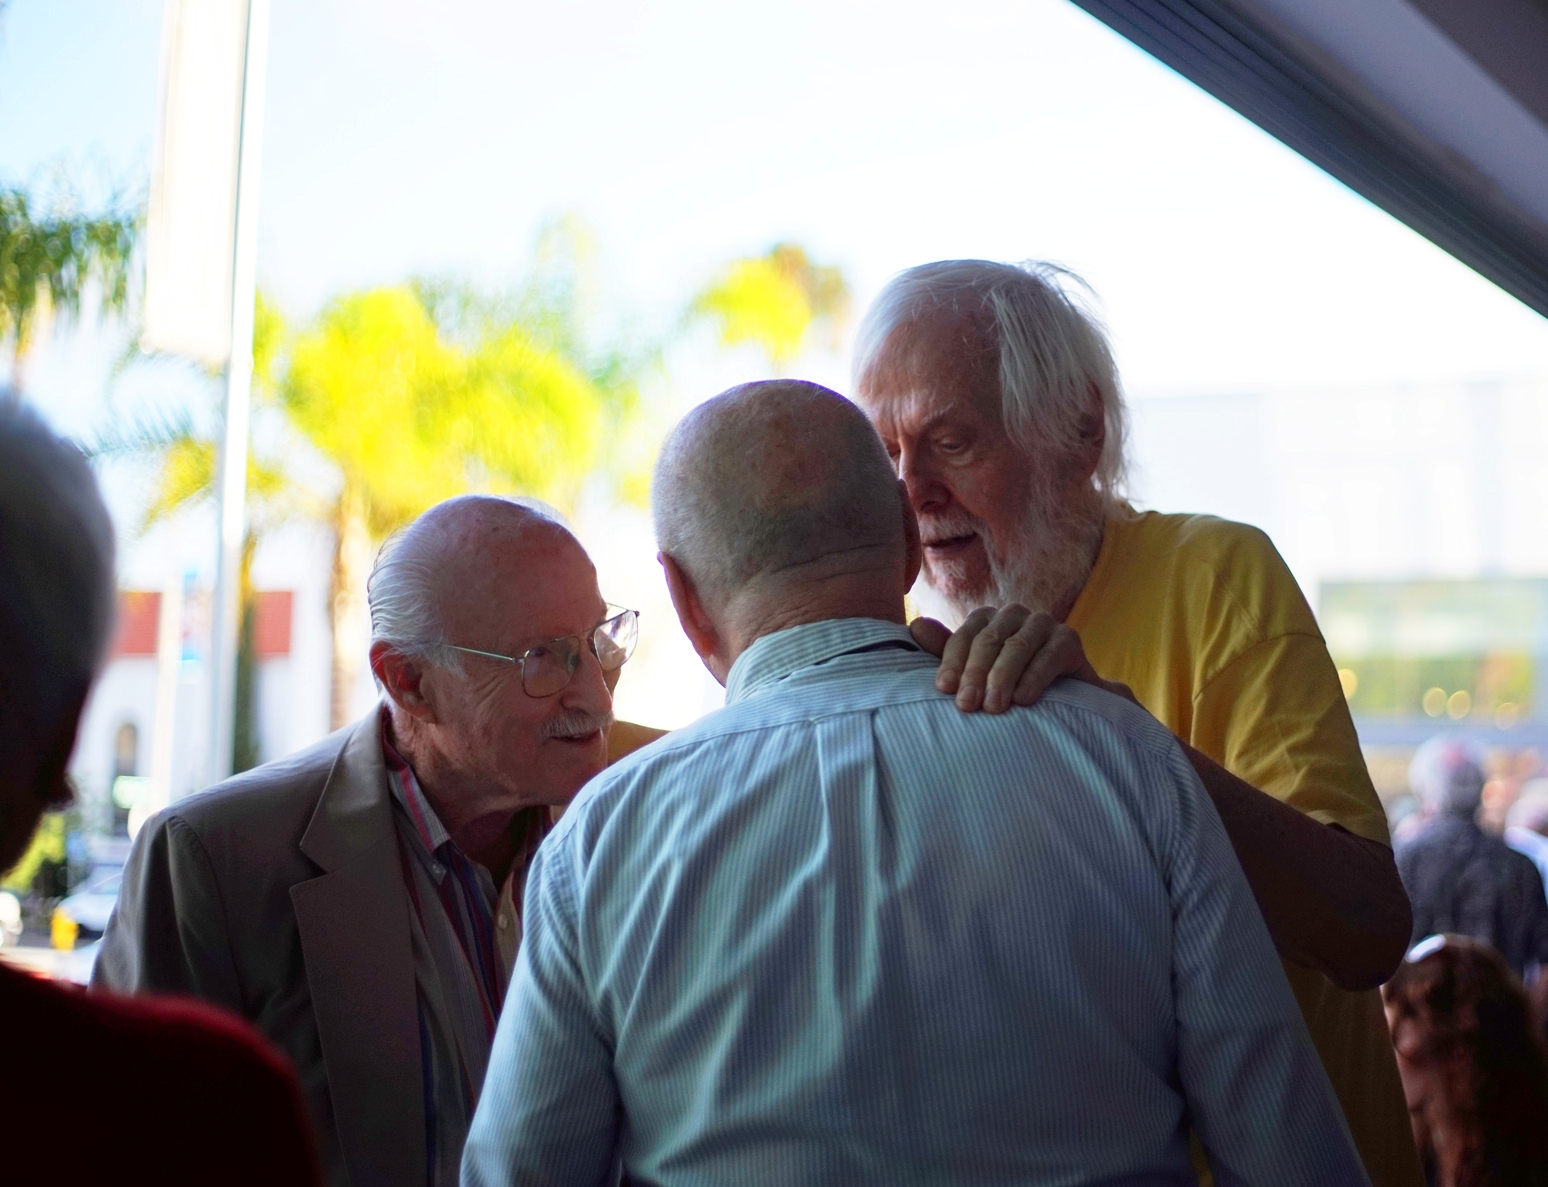 Spitting In The Wind - Opening reception photo by Edwin Negado